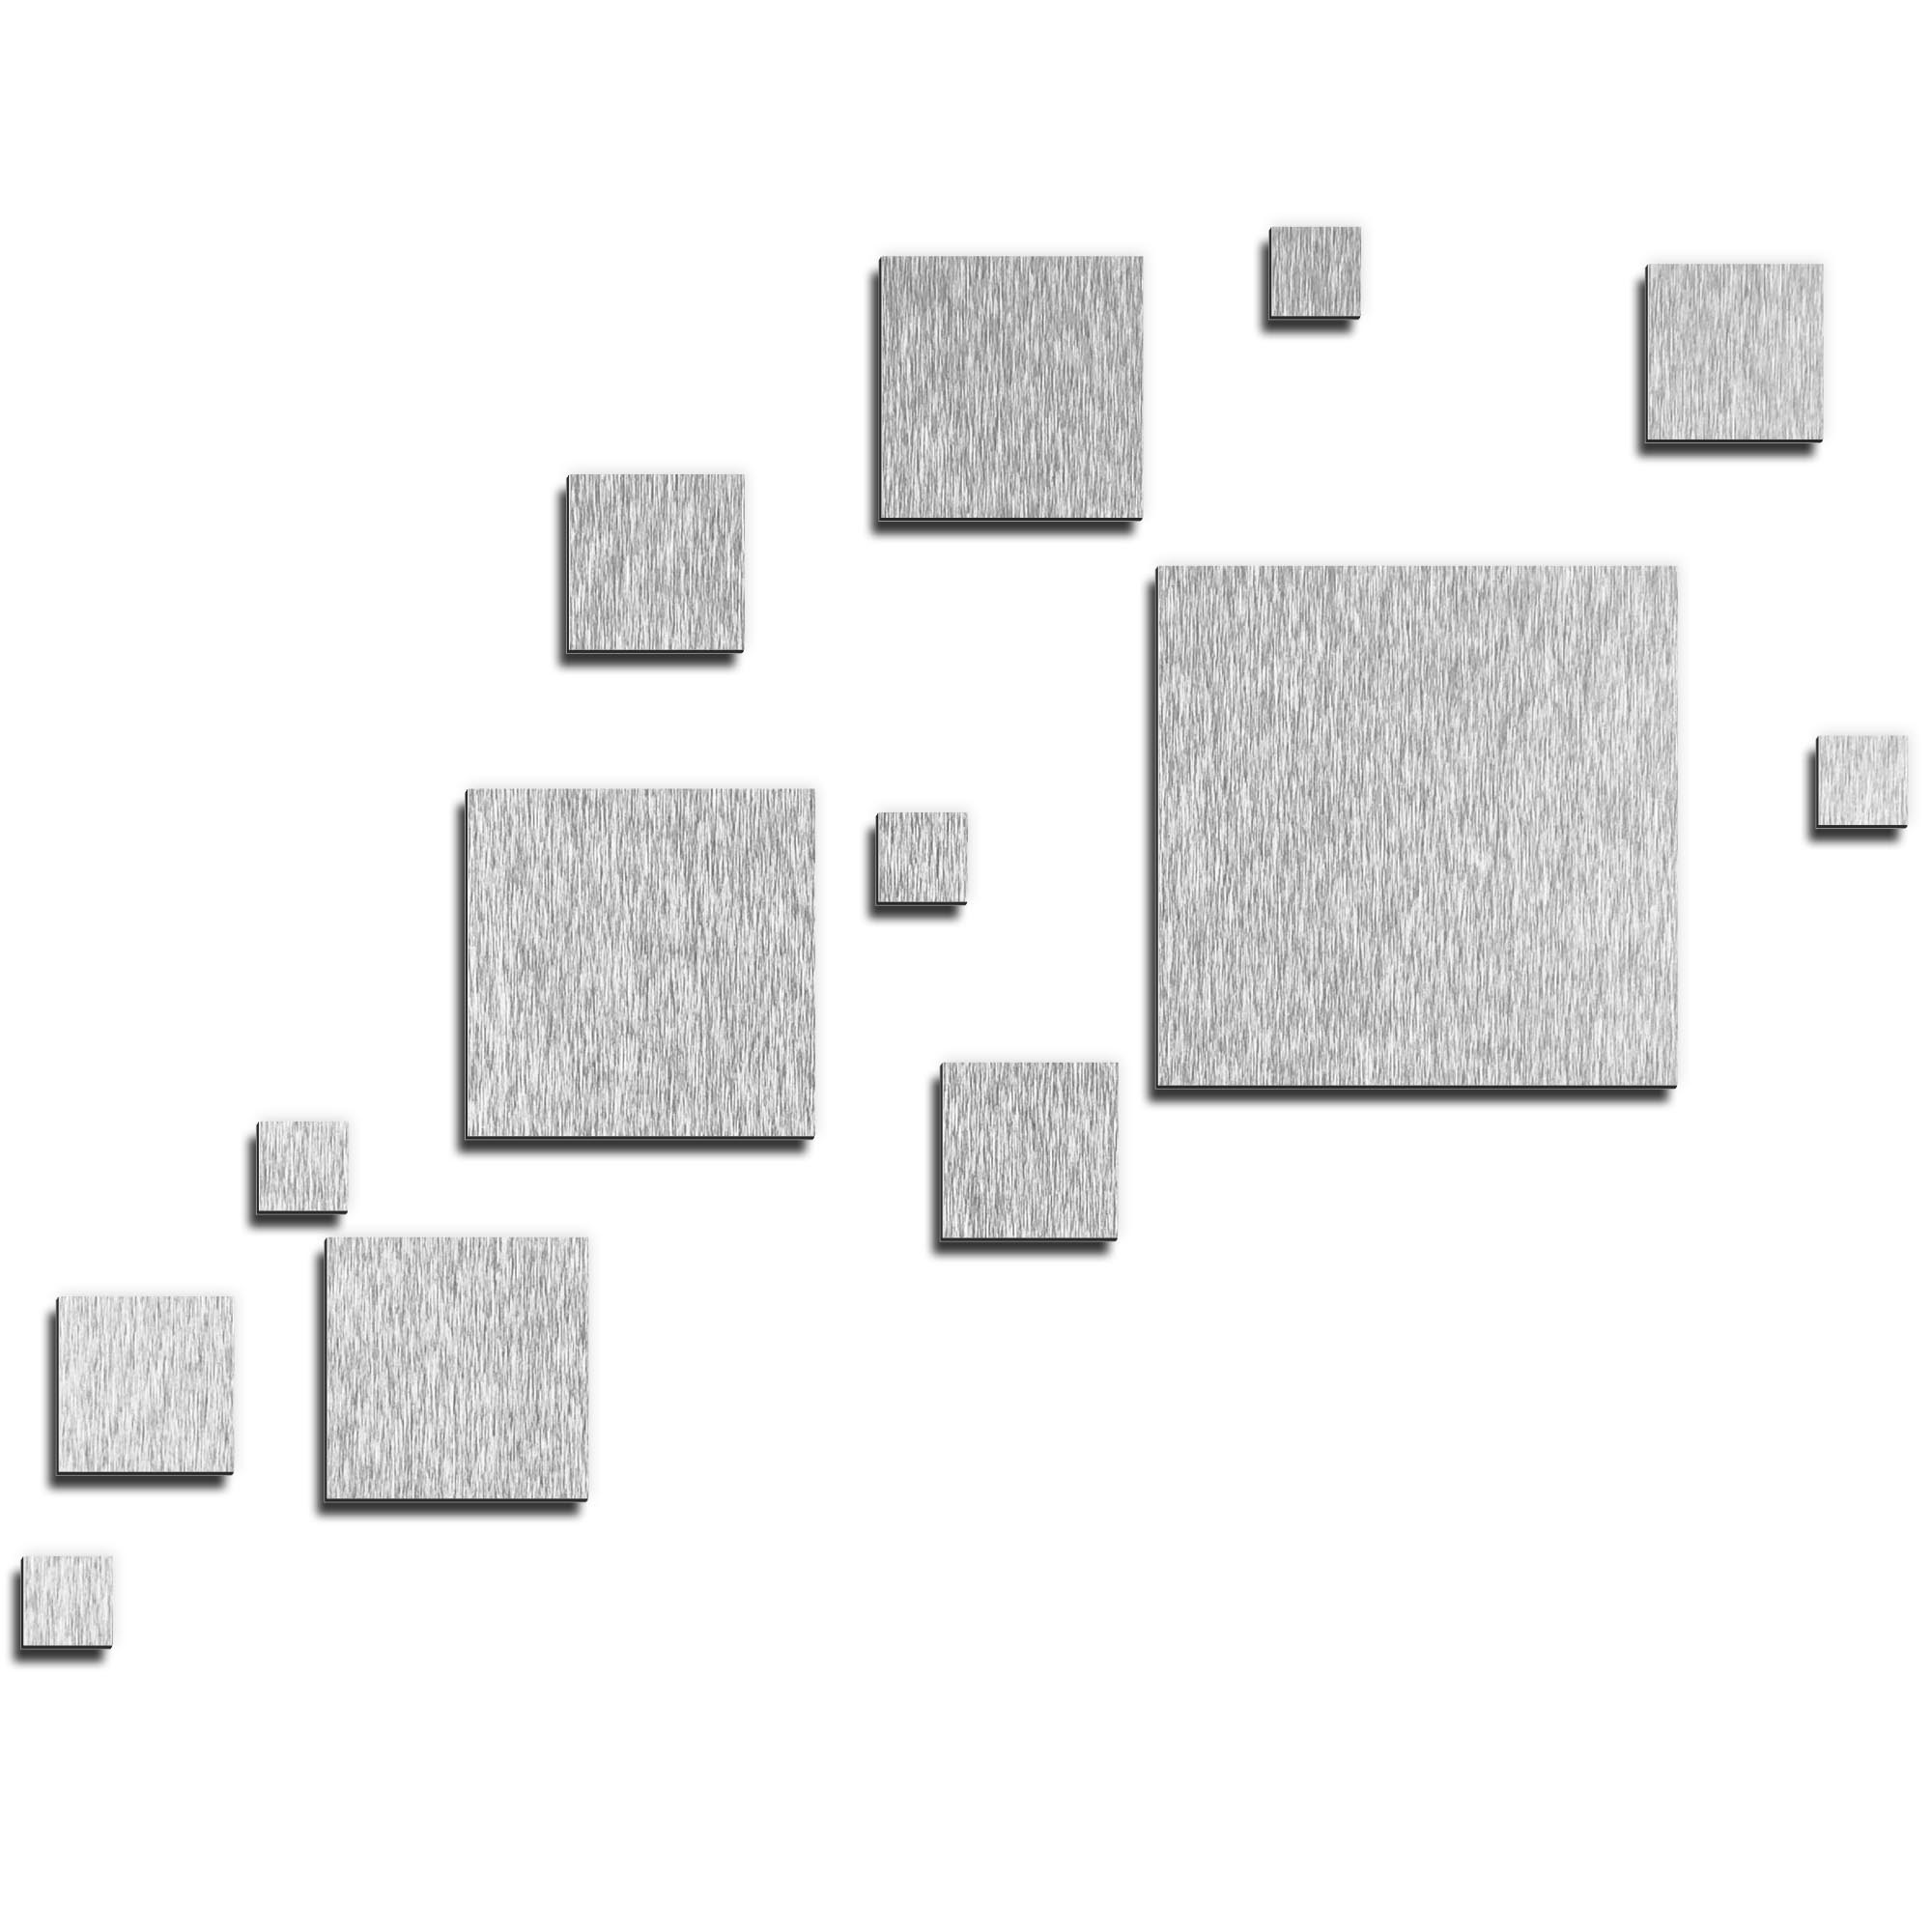 NAY 'Pixels Silver' 66in x 50in Squares Abstract Art on Aluminum Composite